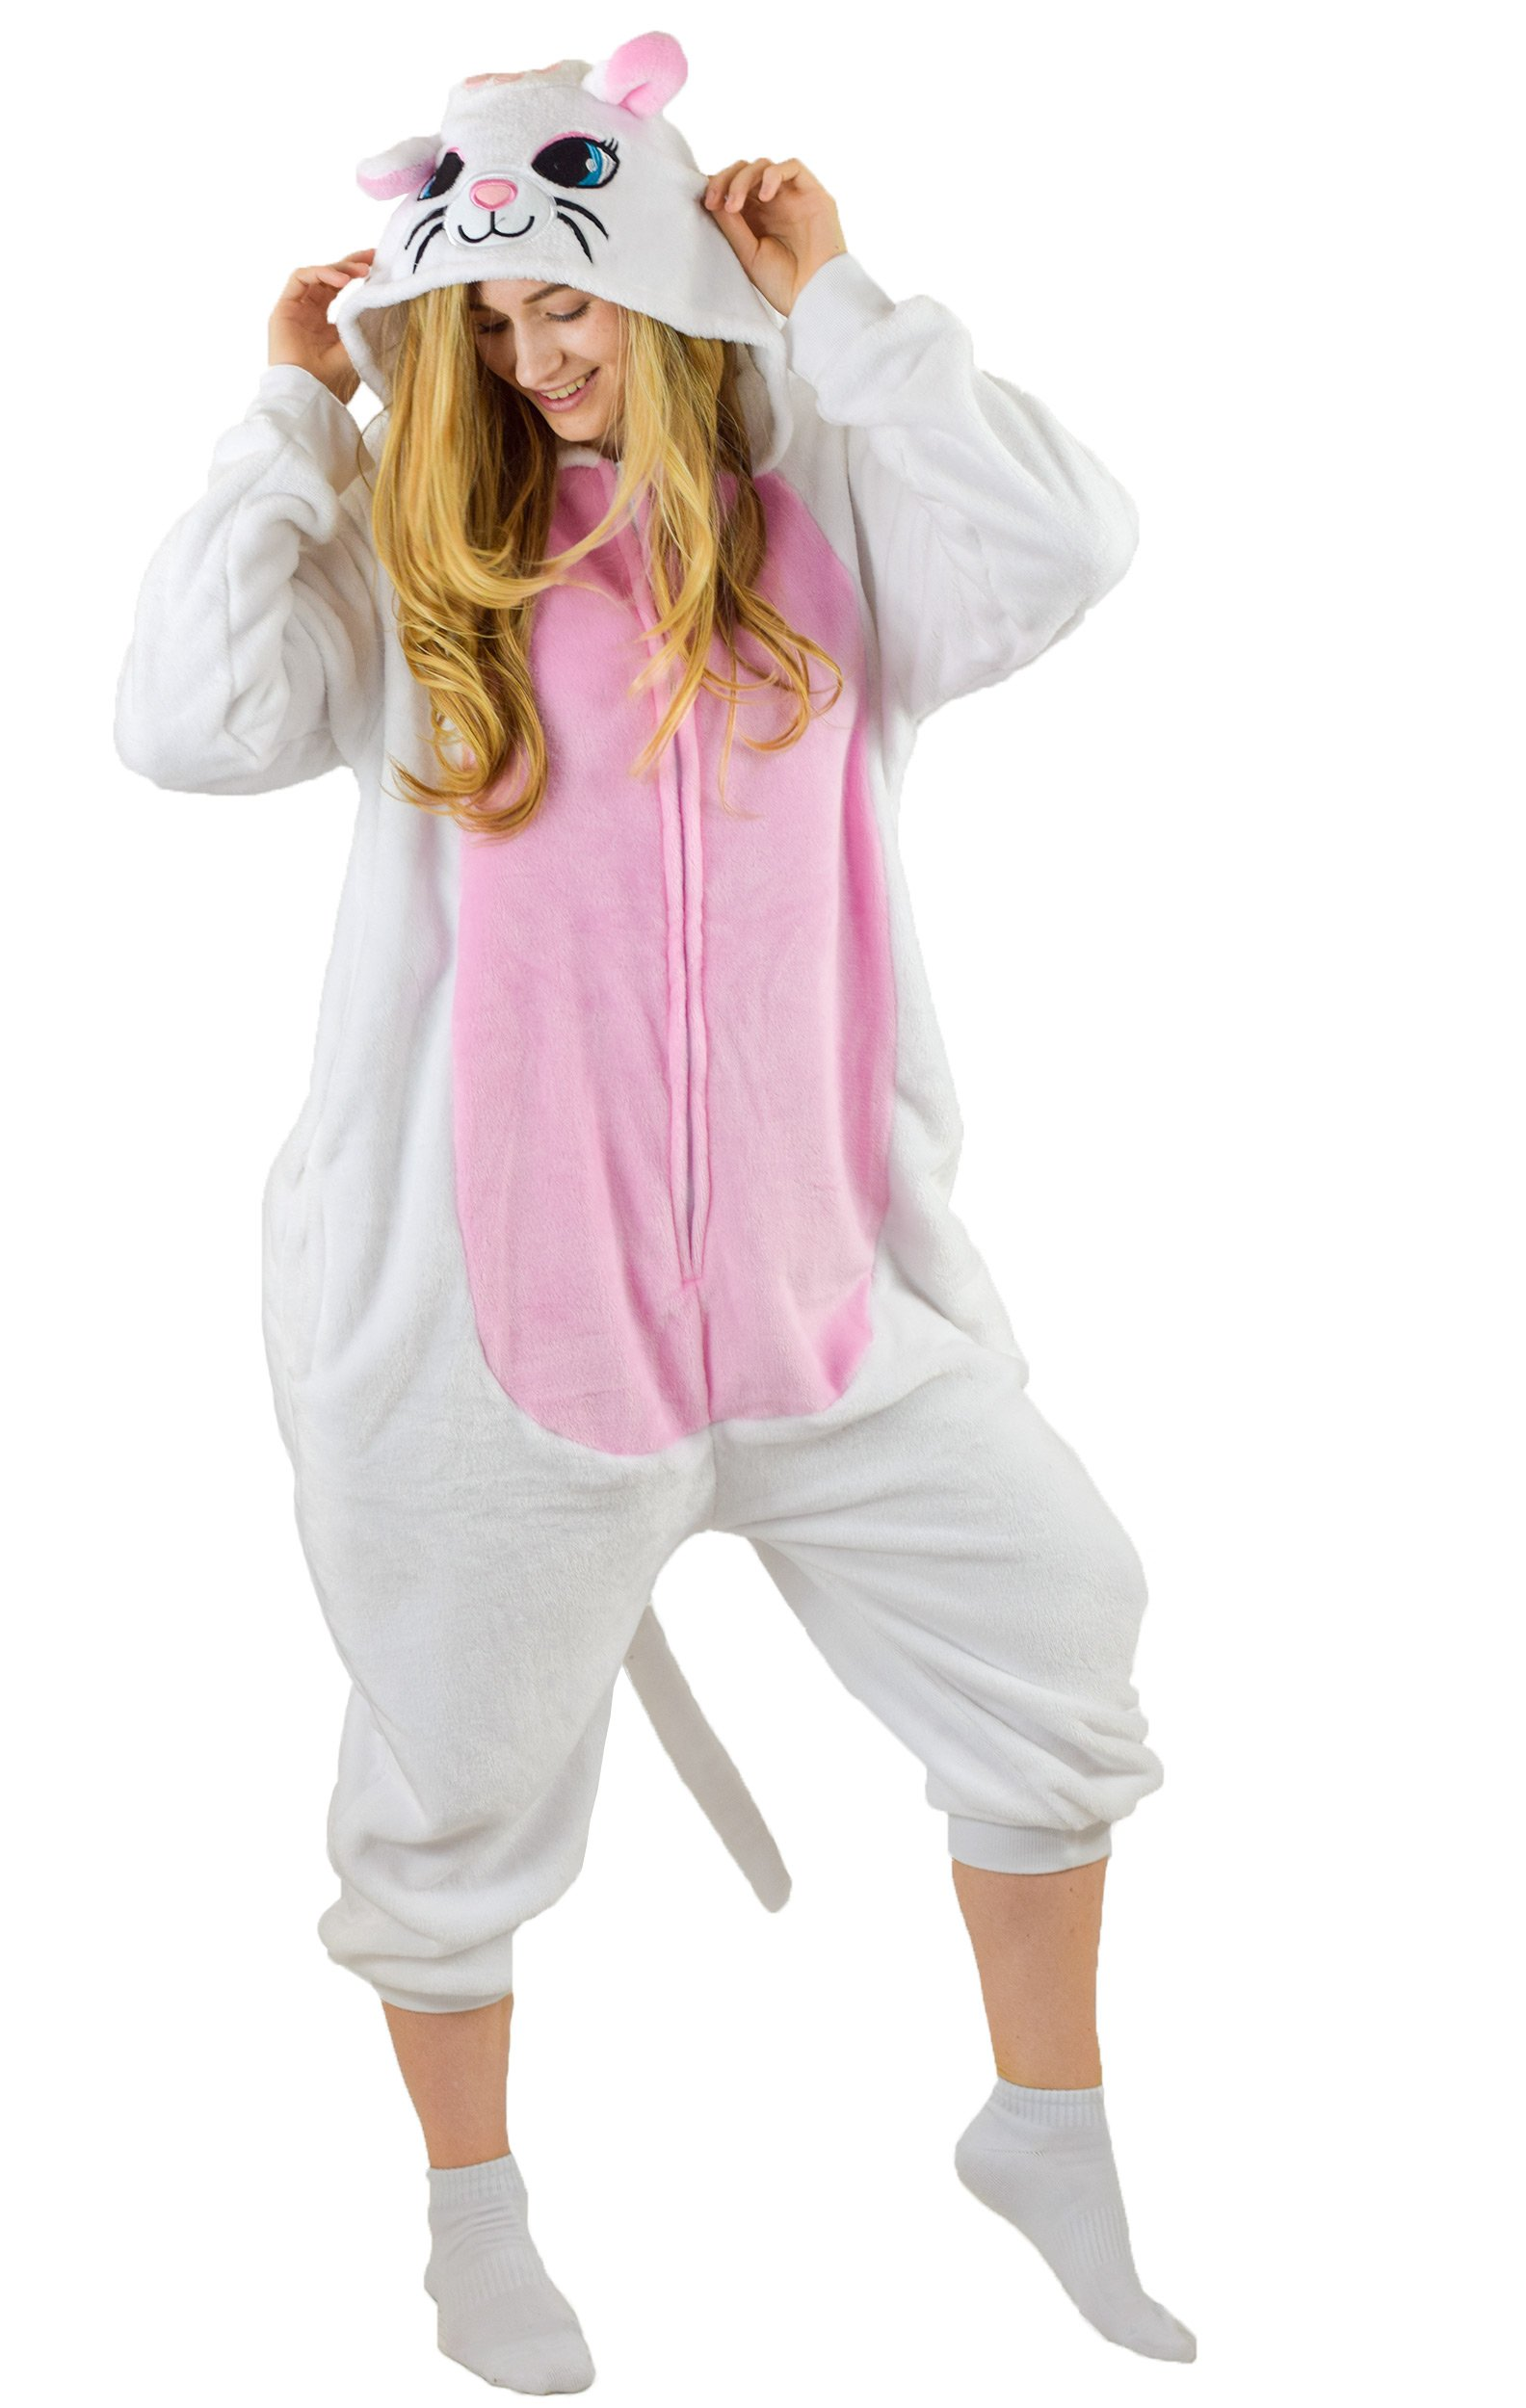 Bad Bear Brand Adult Onesie Cat Animal Pajamas Comfortable Costume With Zipper and Pockets (Small) by Bad Bear Brand (Image #1)